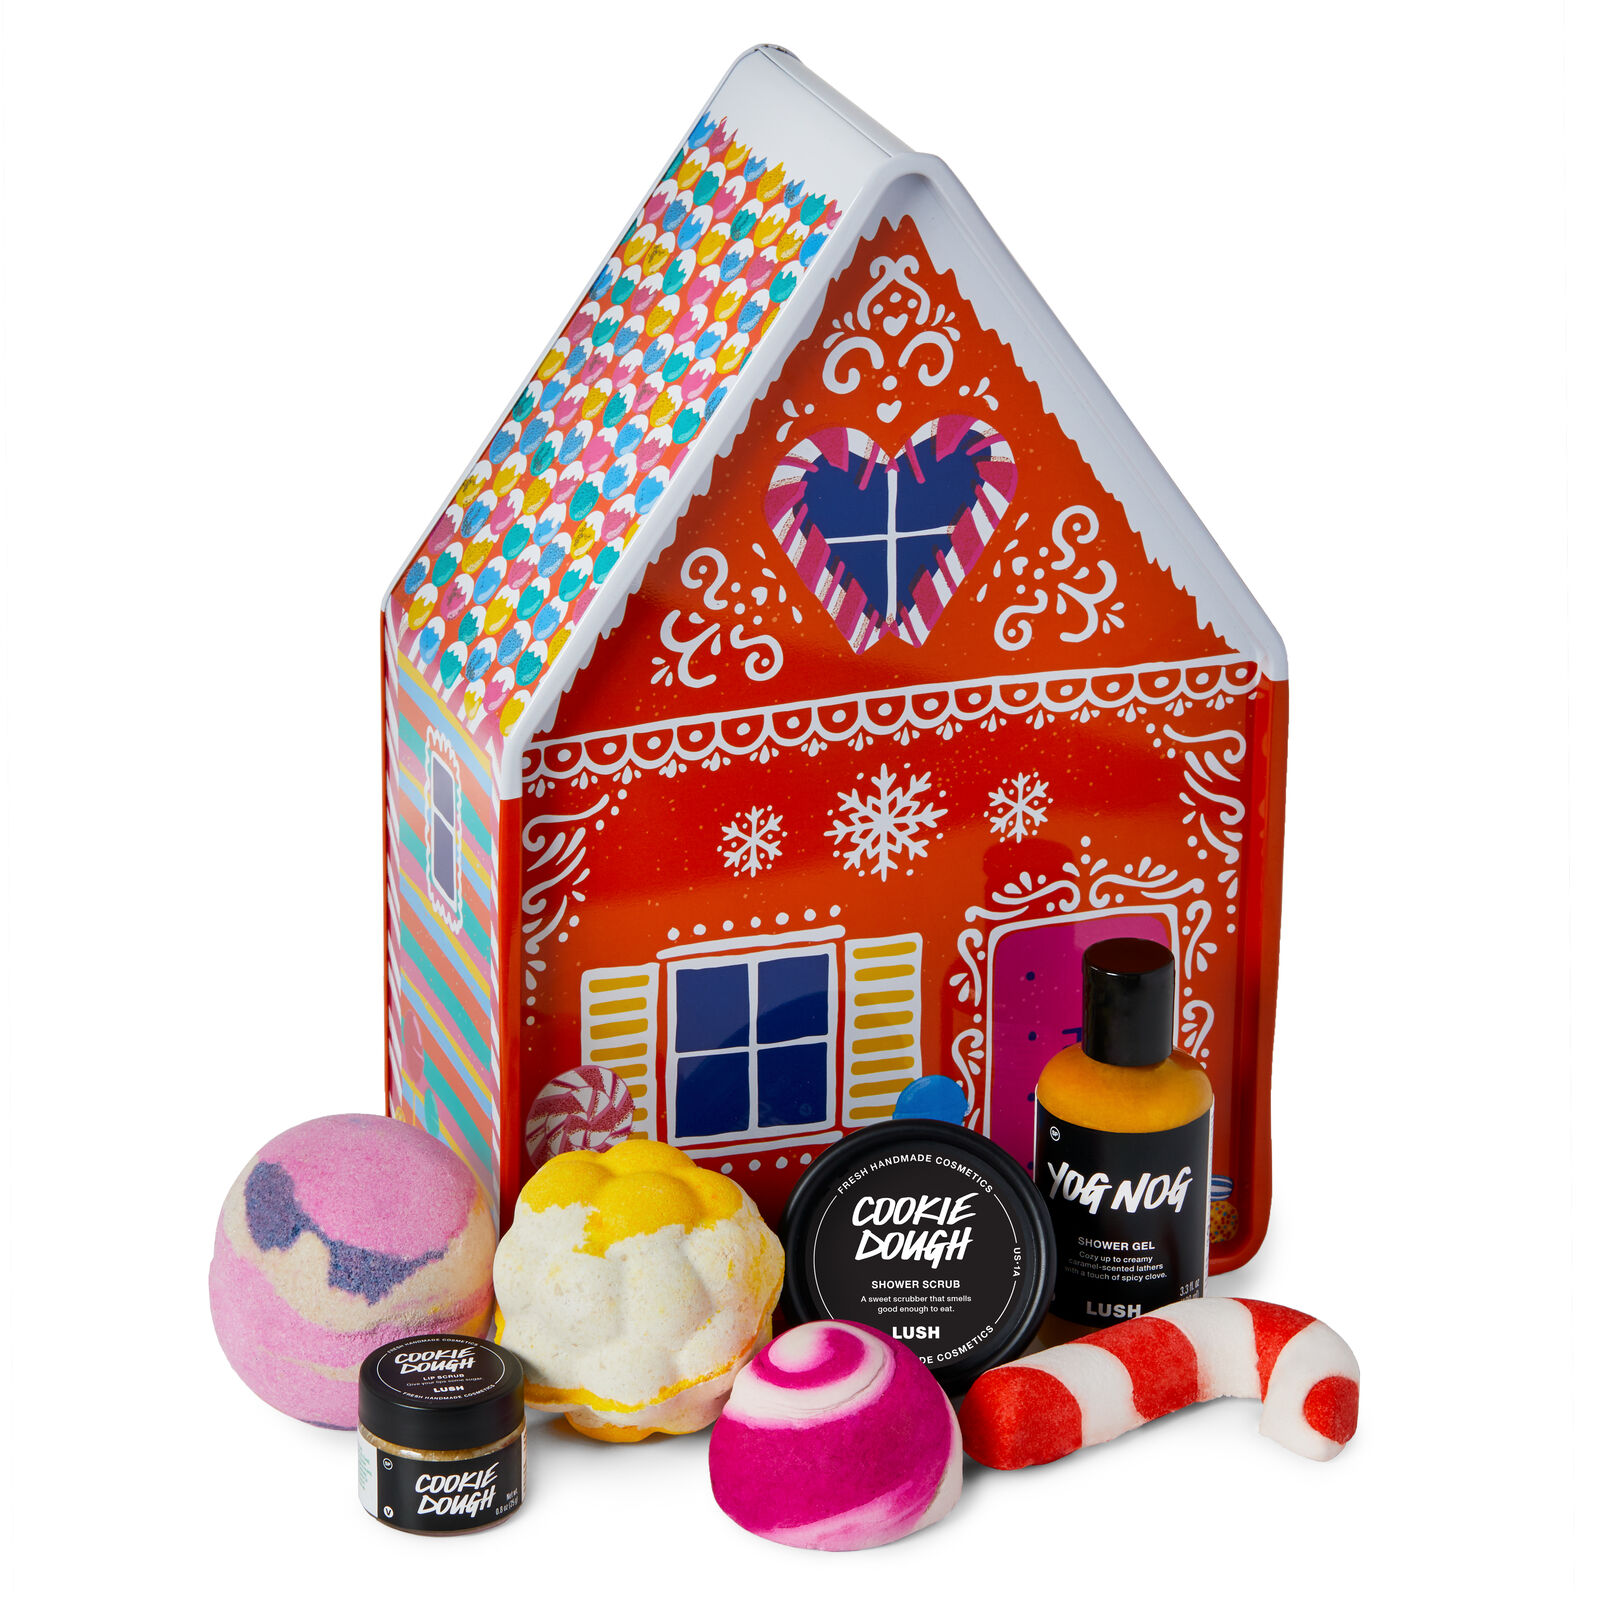 Gingerbread House -Lush Christmas products